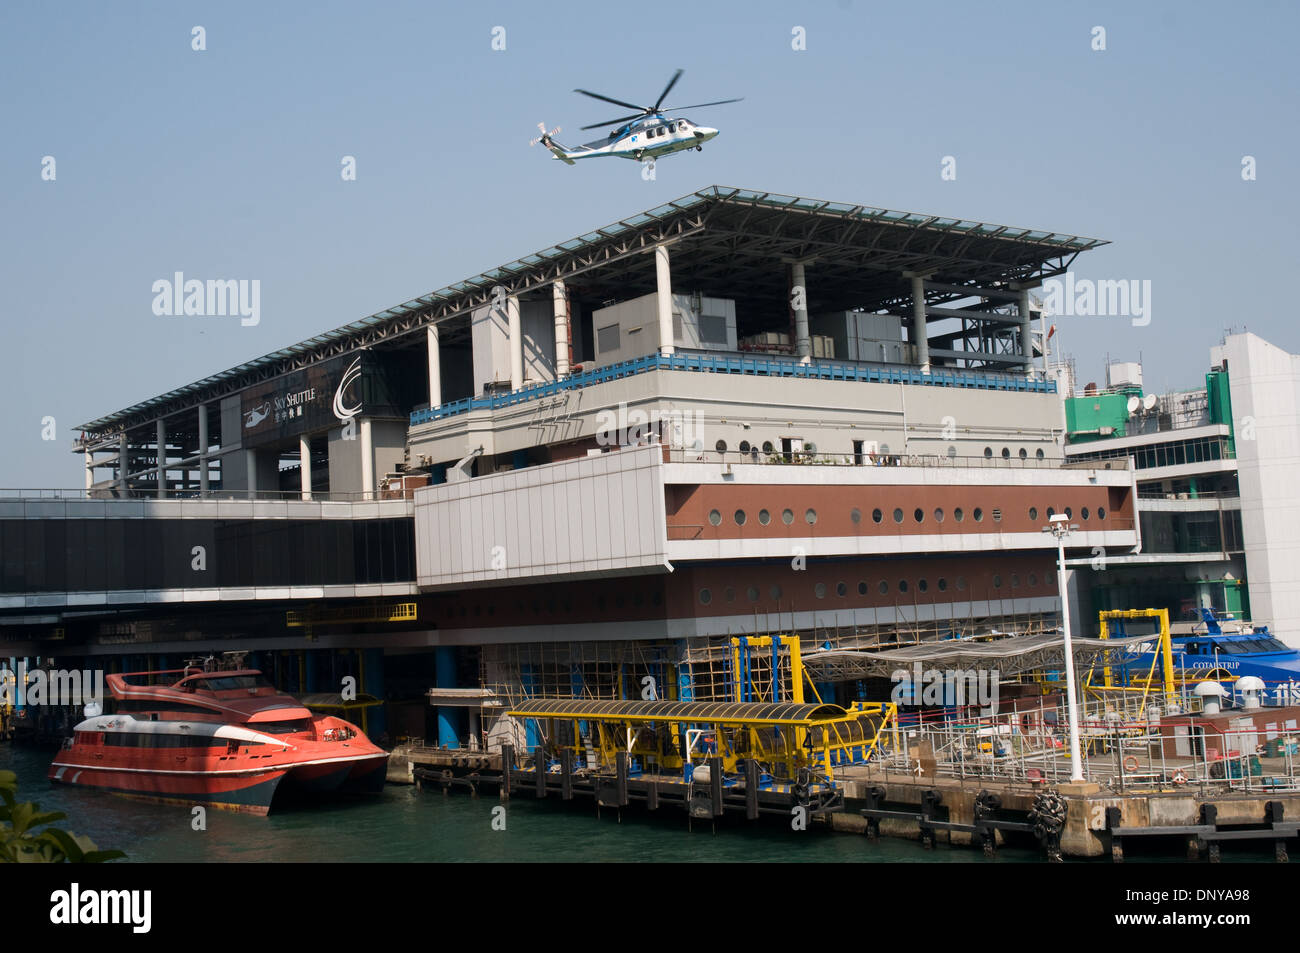 A helicopter lifts off from the Macau Ferry terminal building to fly to Macau. Moored alongside the building are the ferries. - Stock Image